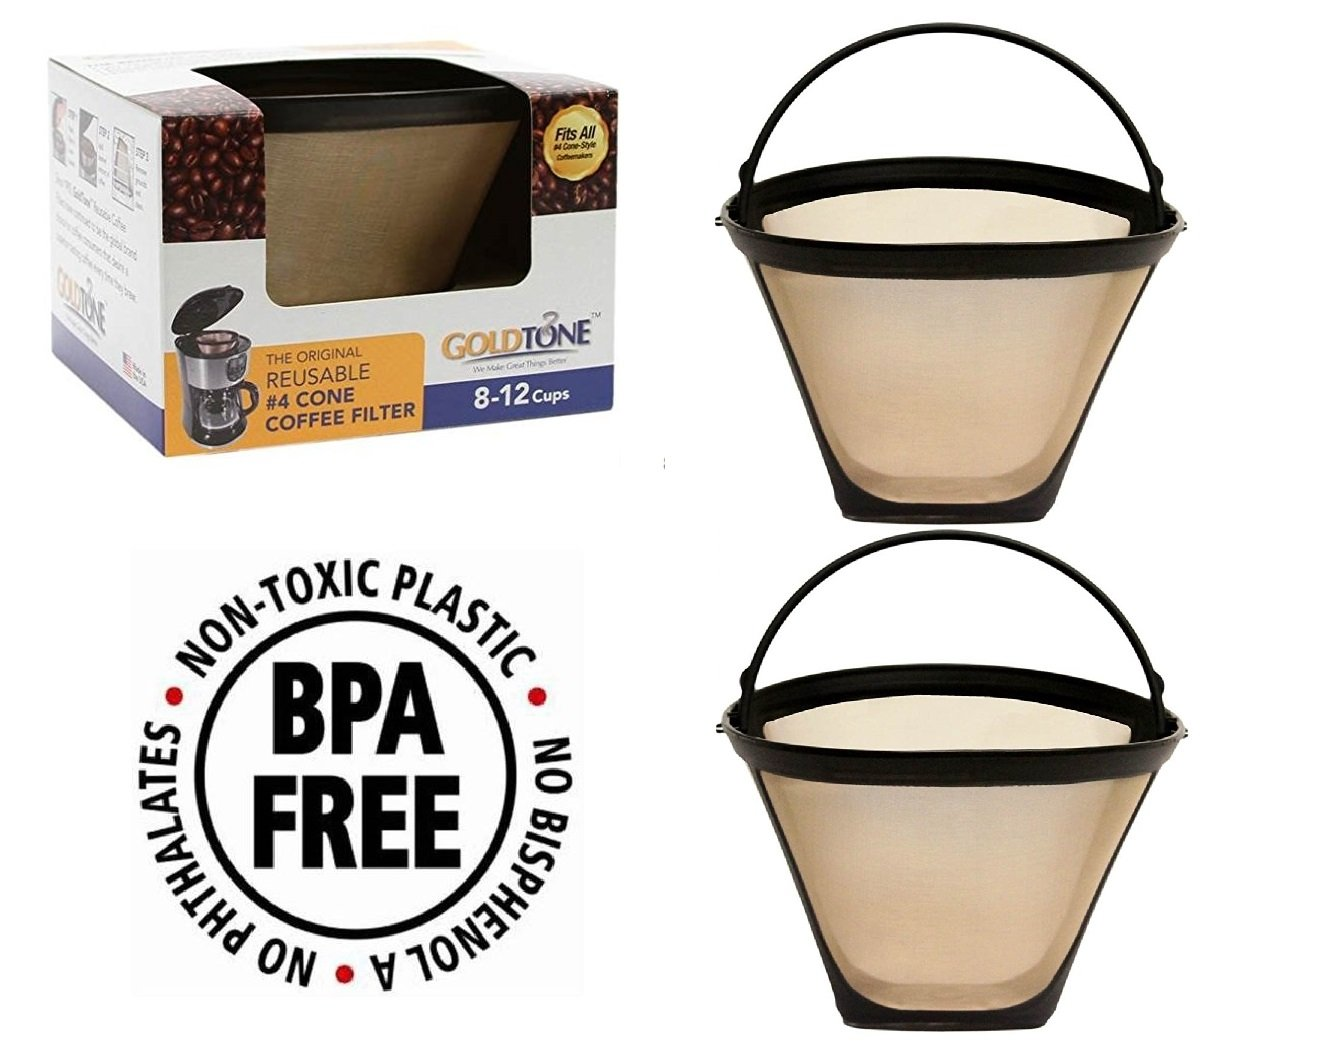 GoldTone Brand Reusable #4 Cone replaces your Ninja Coffee Filter for Ninja Coffee Bar Brewer - BPA Free - Made in USA [2 PACK] by GoldTone (Image #1)